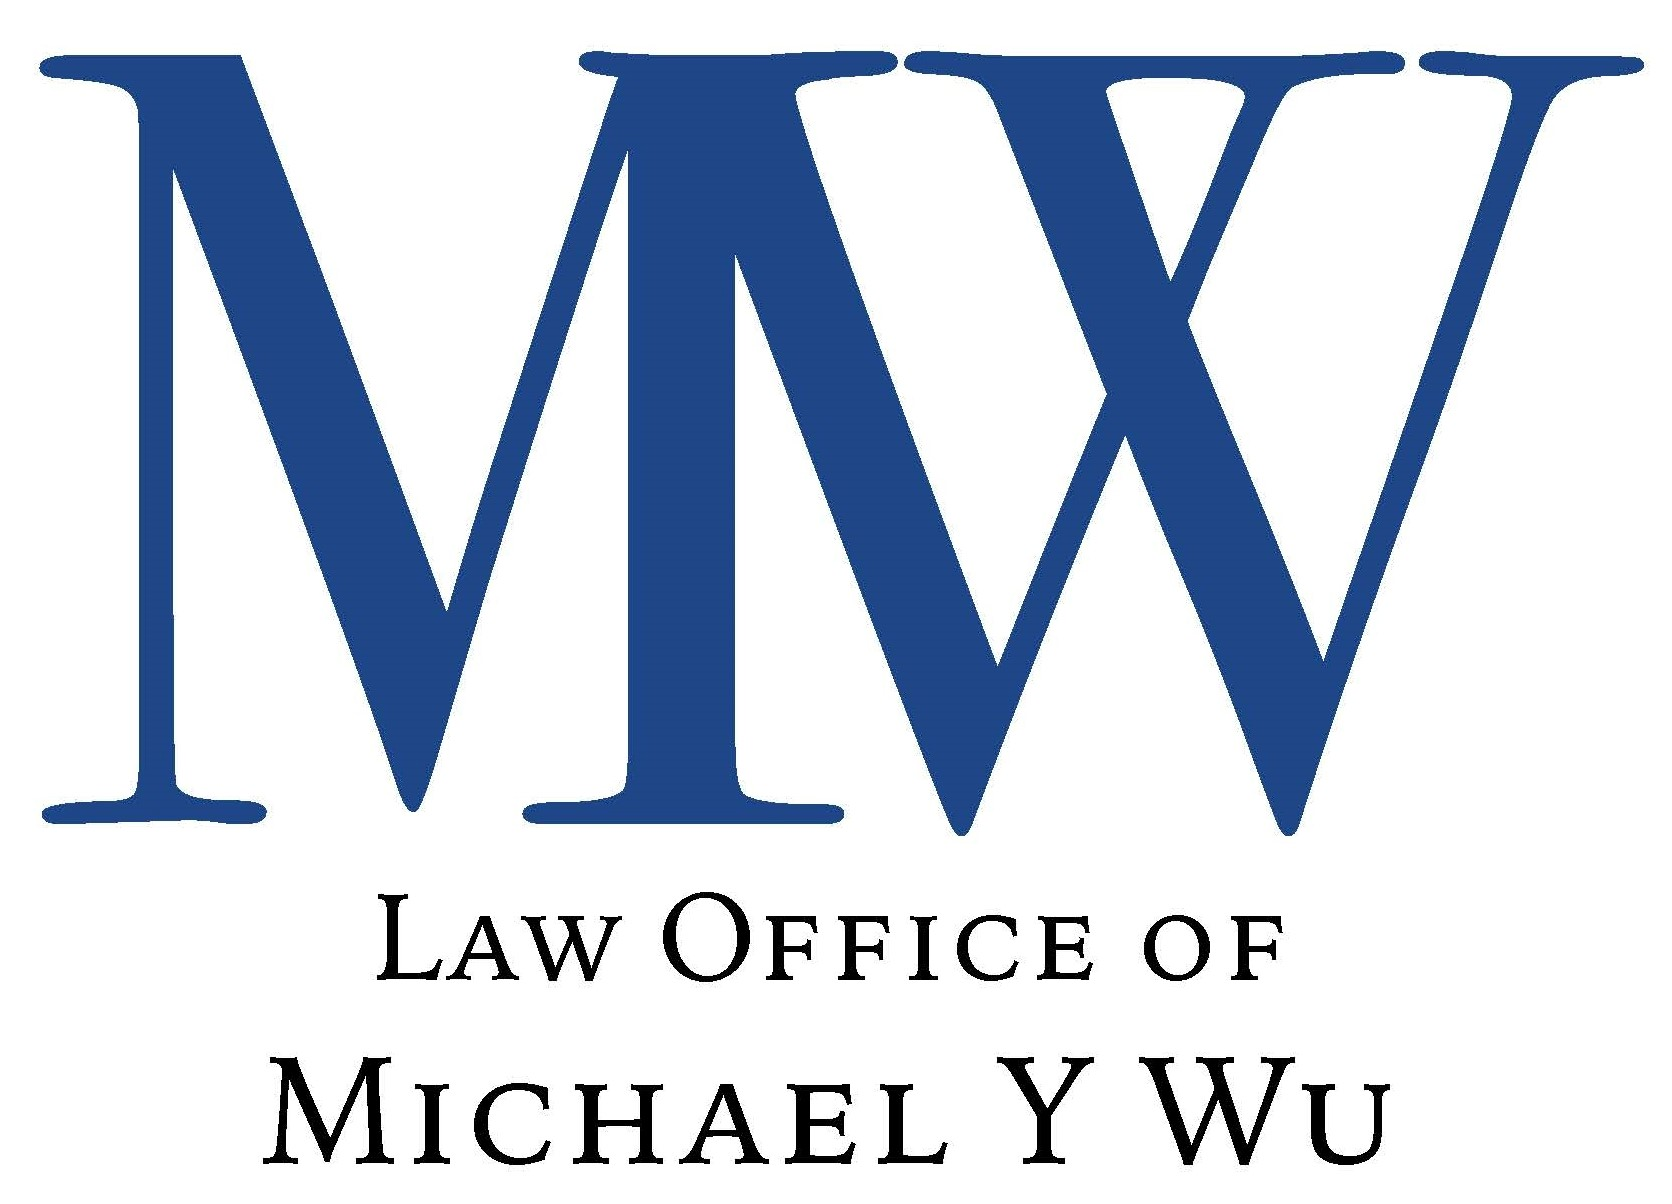 Law Office of Michael Wu